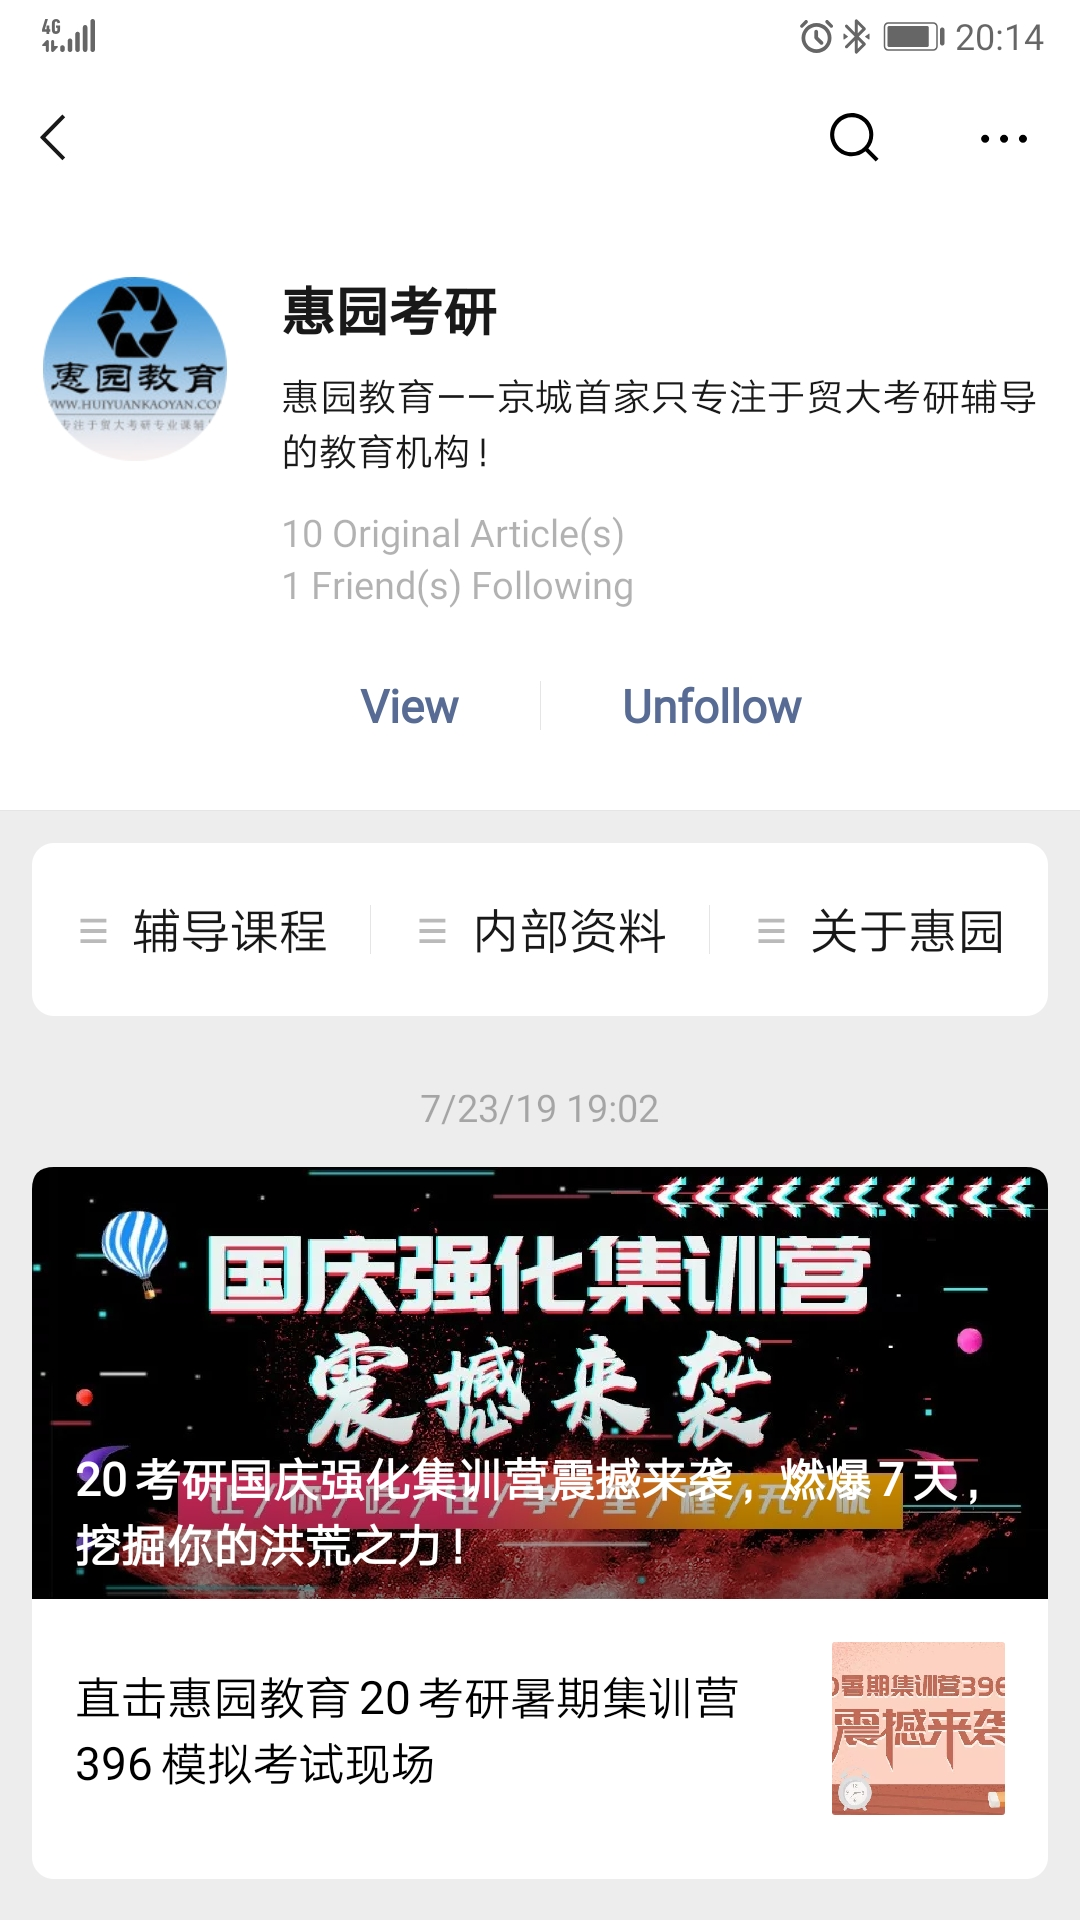 Screenshot_20190812_201442_com.tencent.mm.jpg